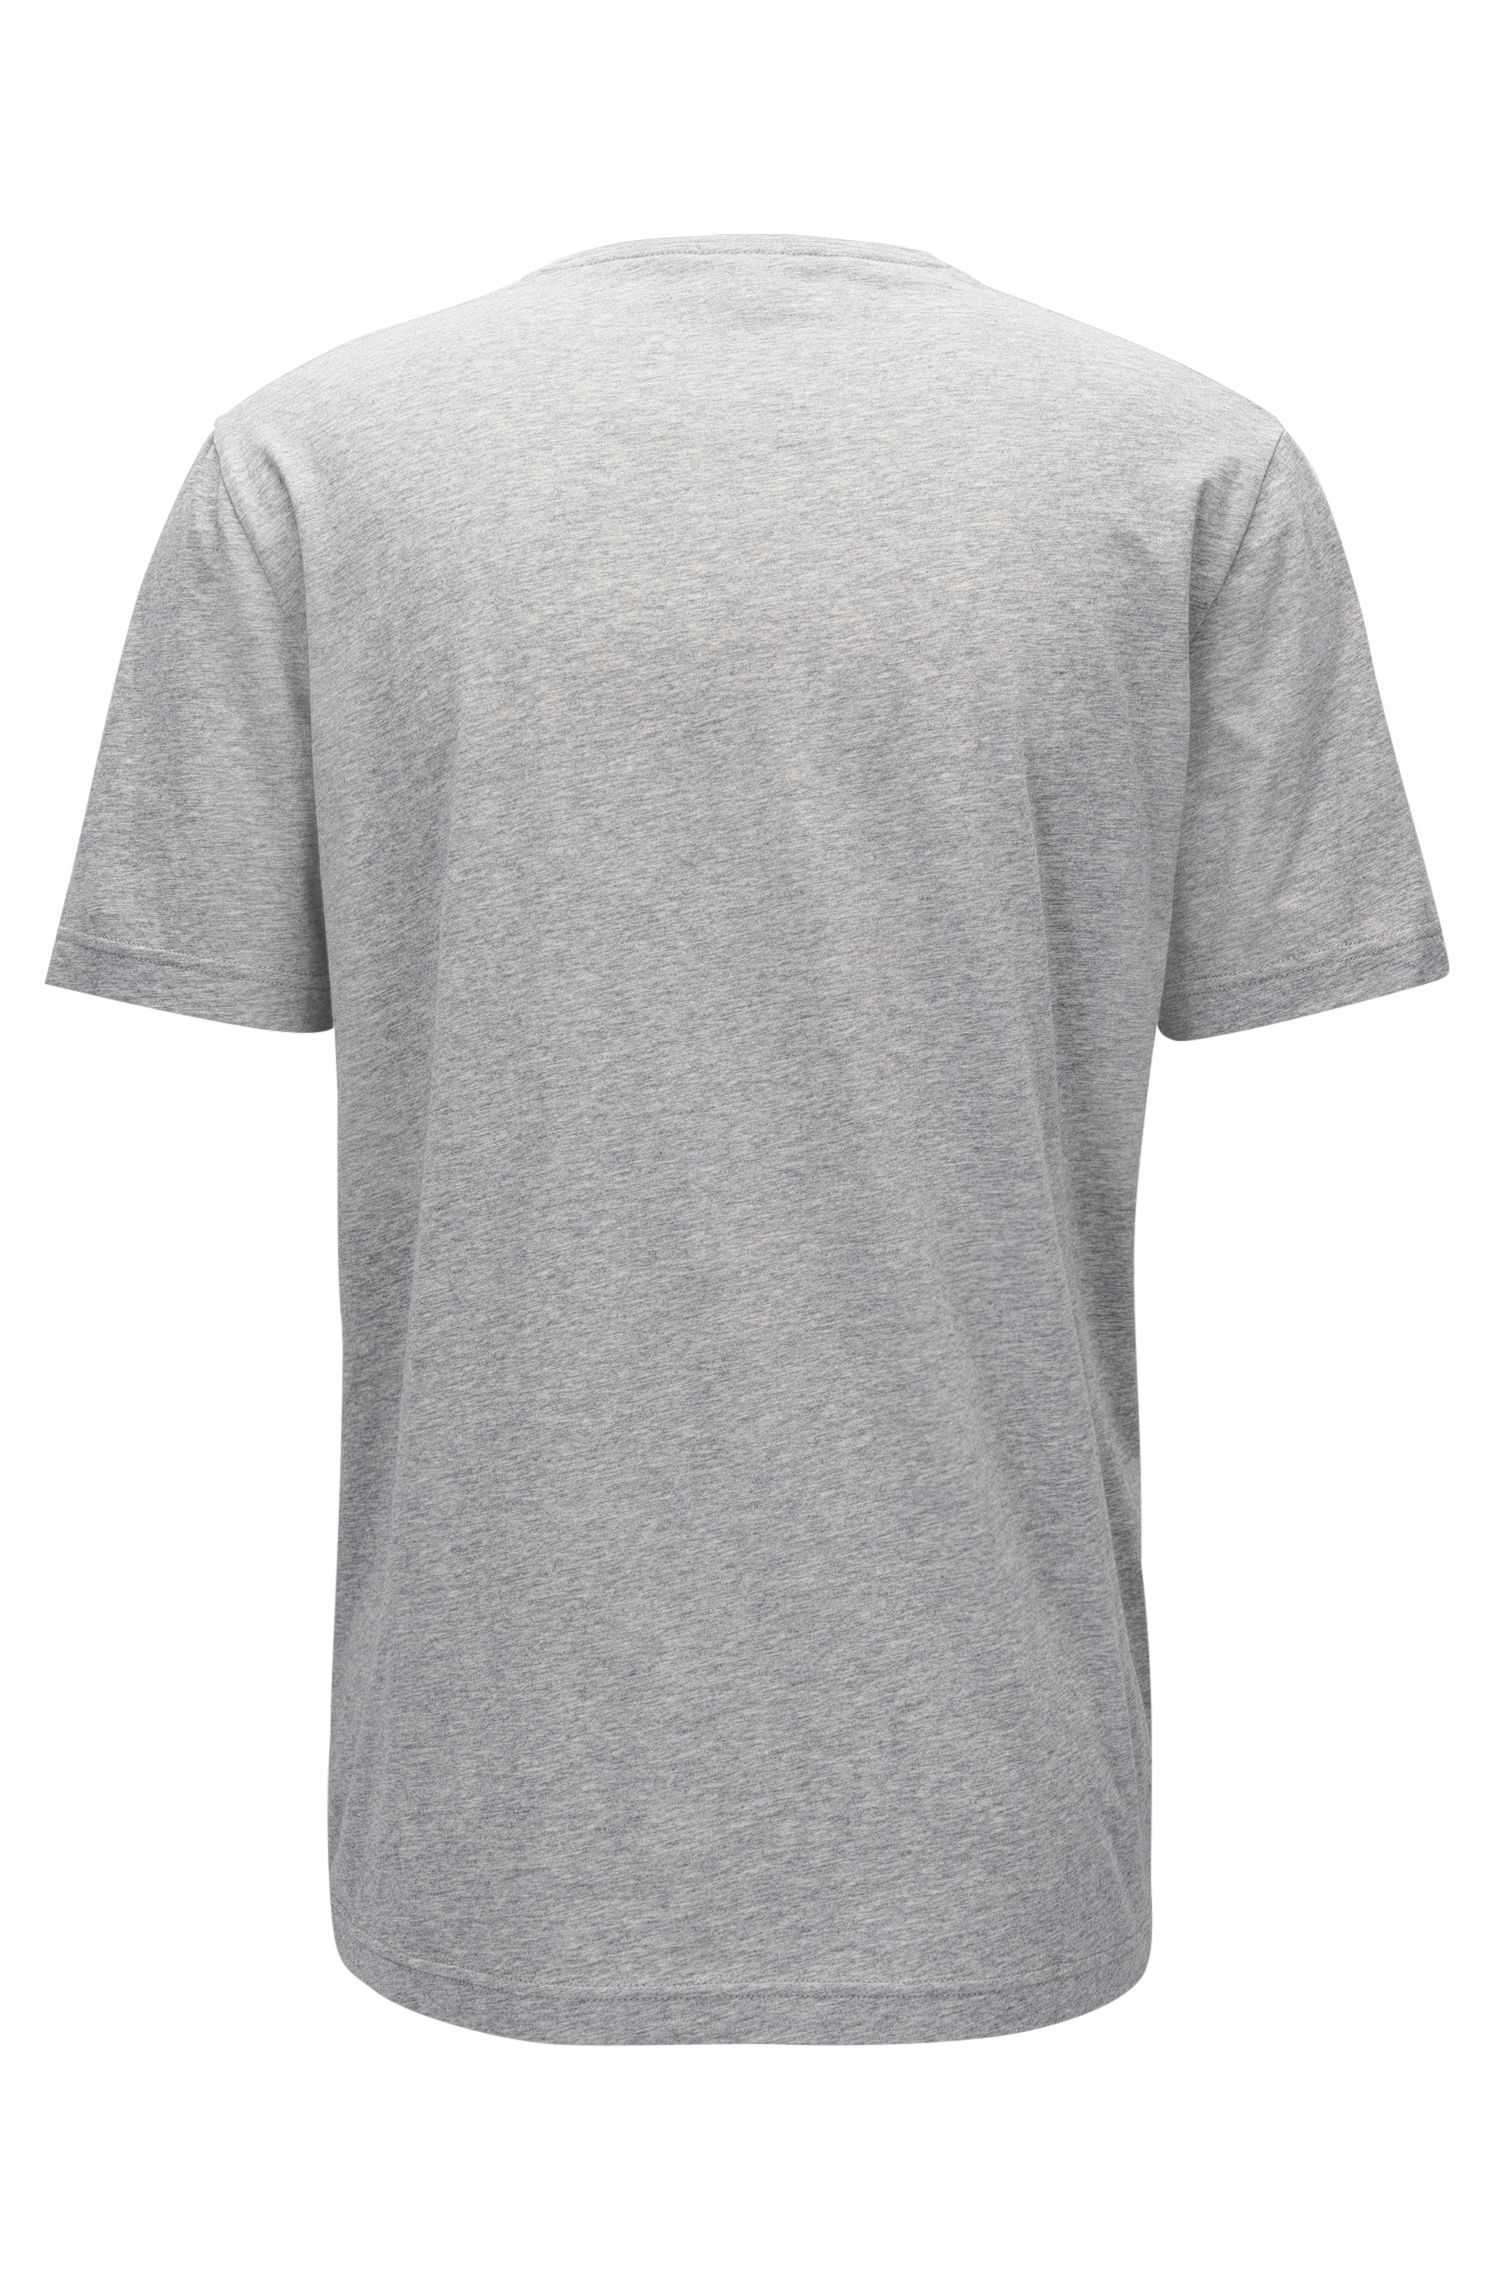 T-shirt Slim Fit en coton doux